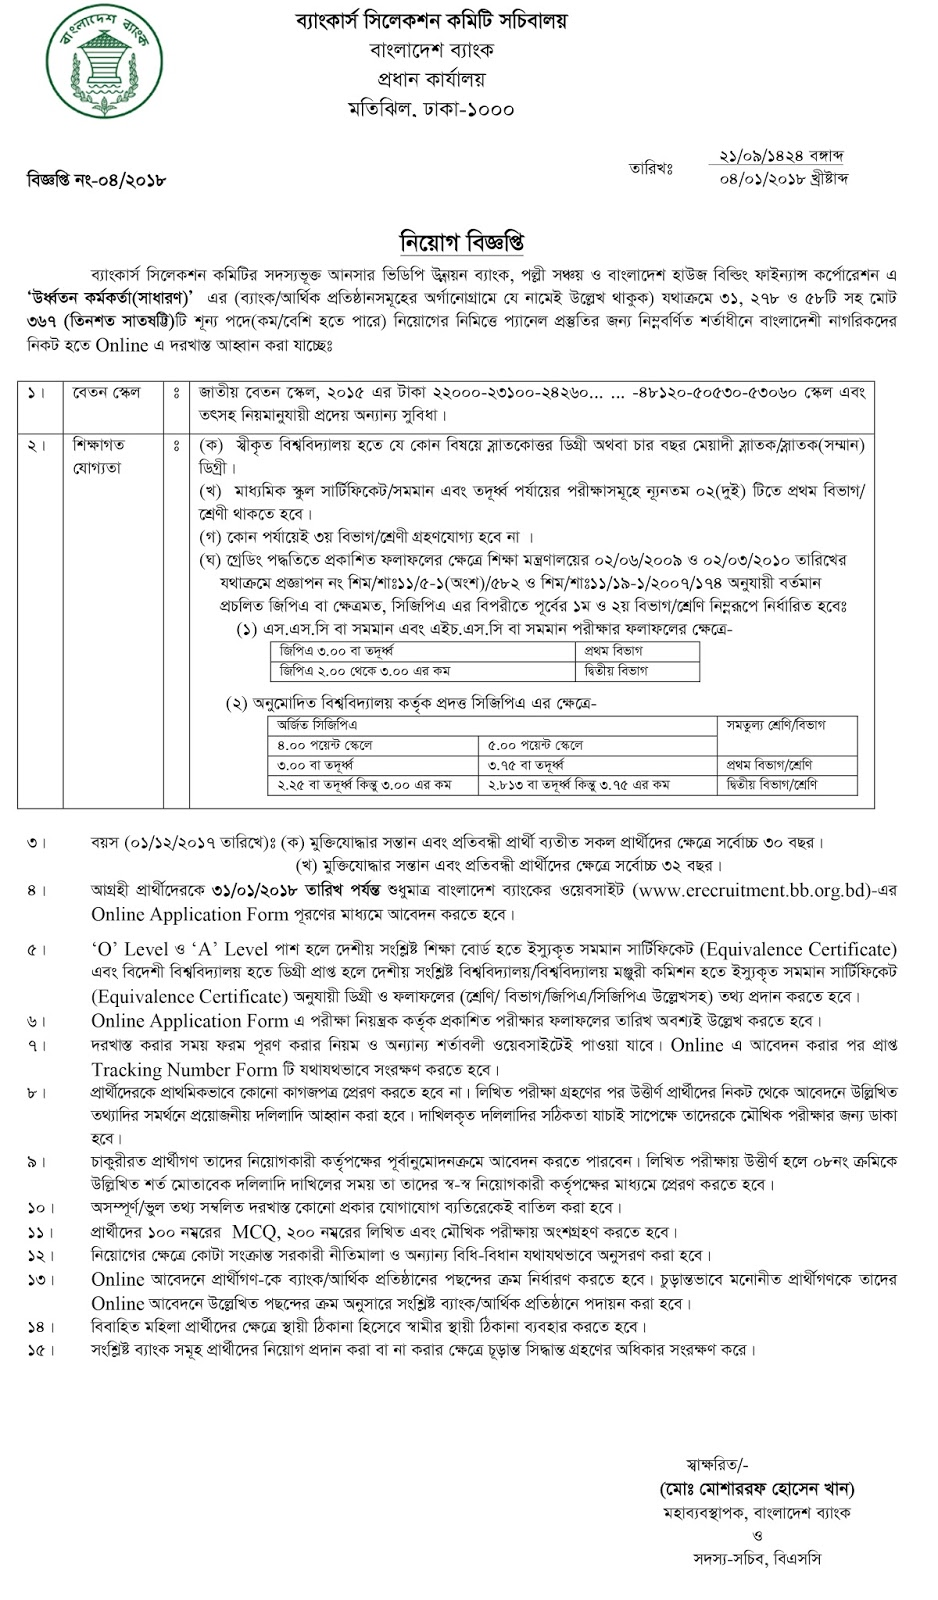 BHBFC Senior Officer (General) Job Circular 2018